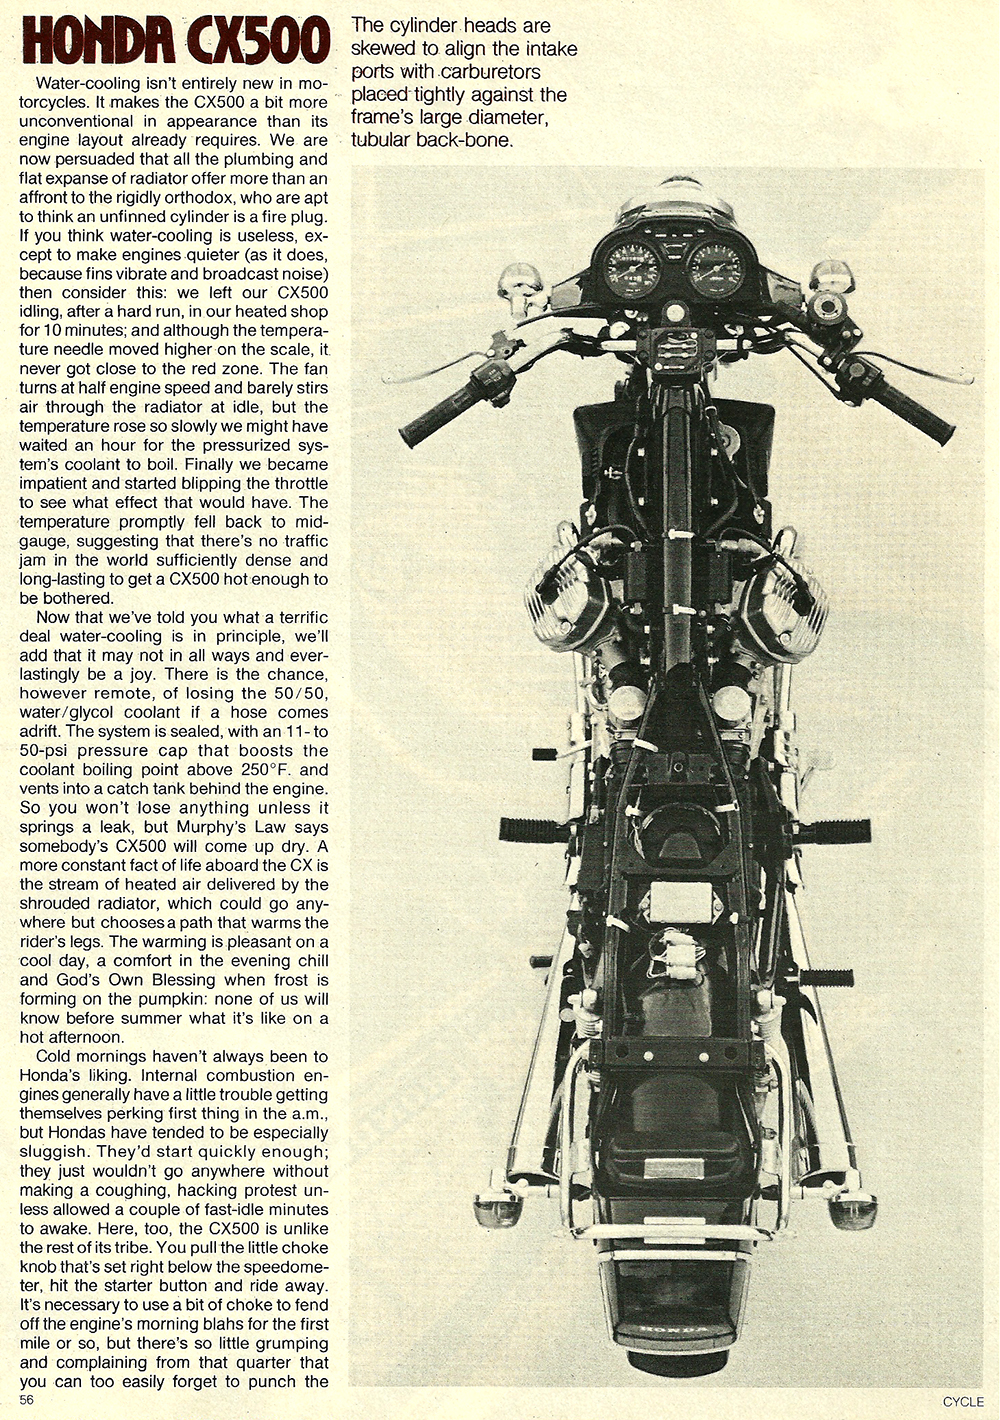 1978 Honda CX500 road test 03.jpg